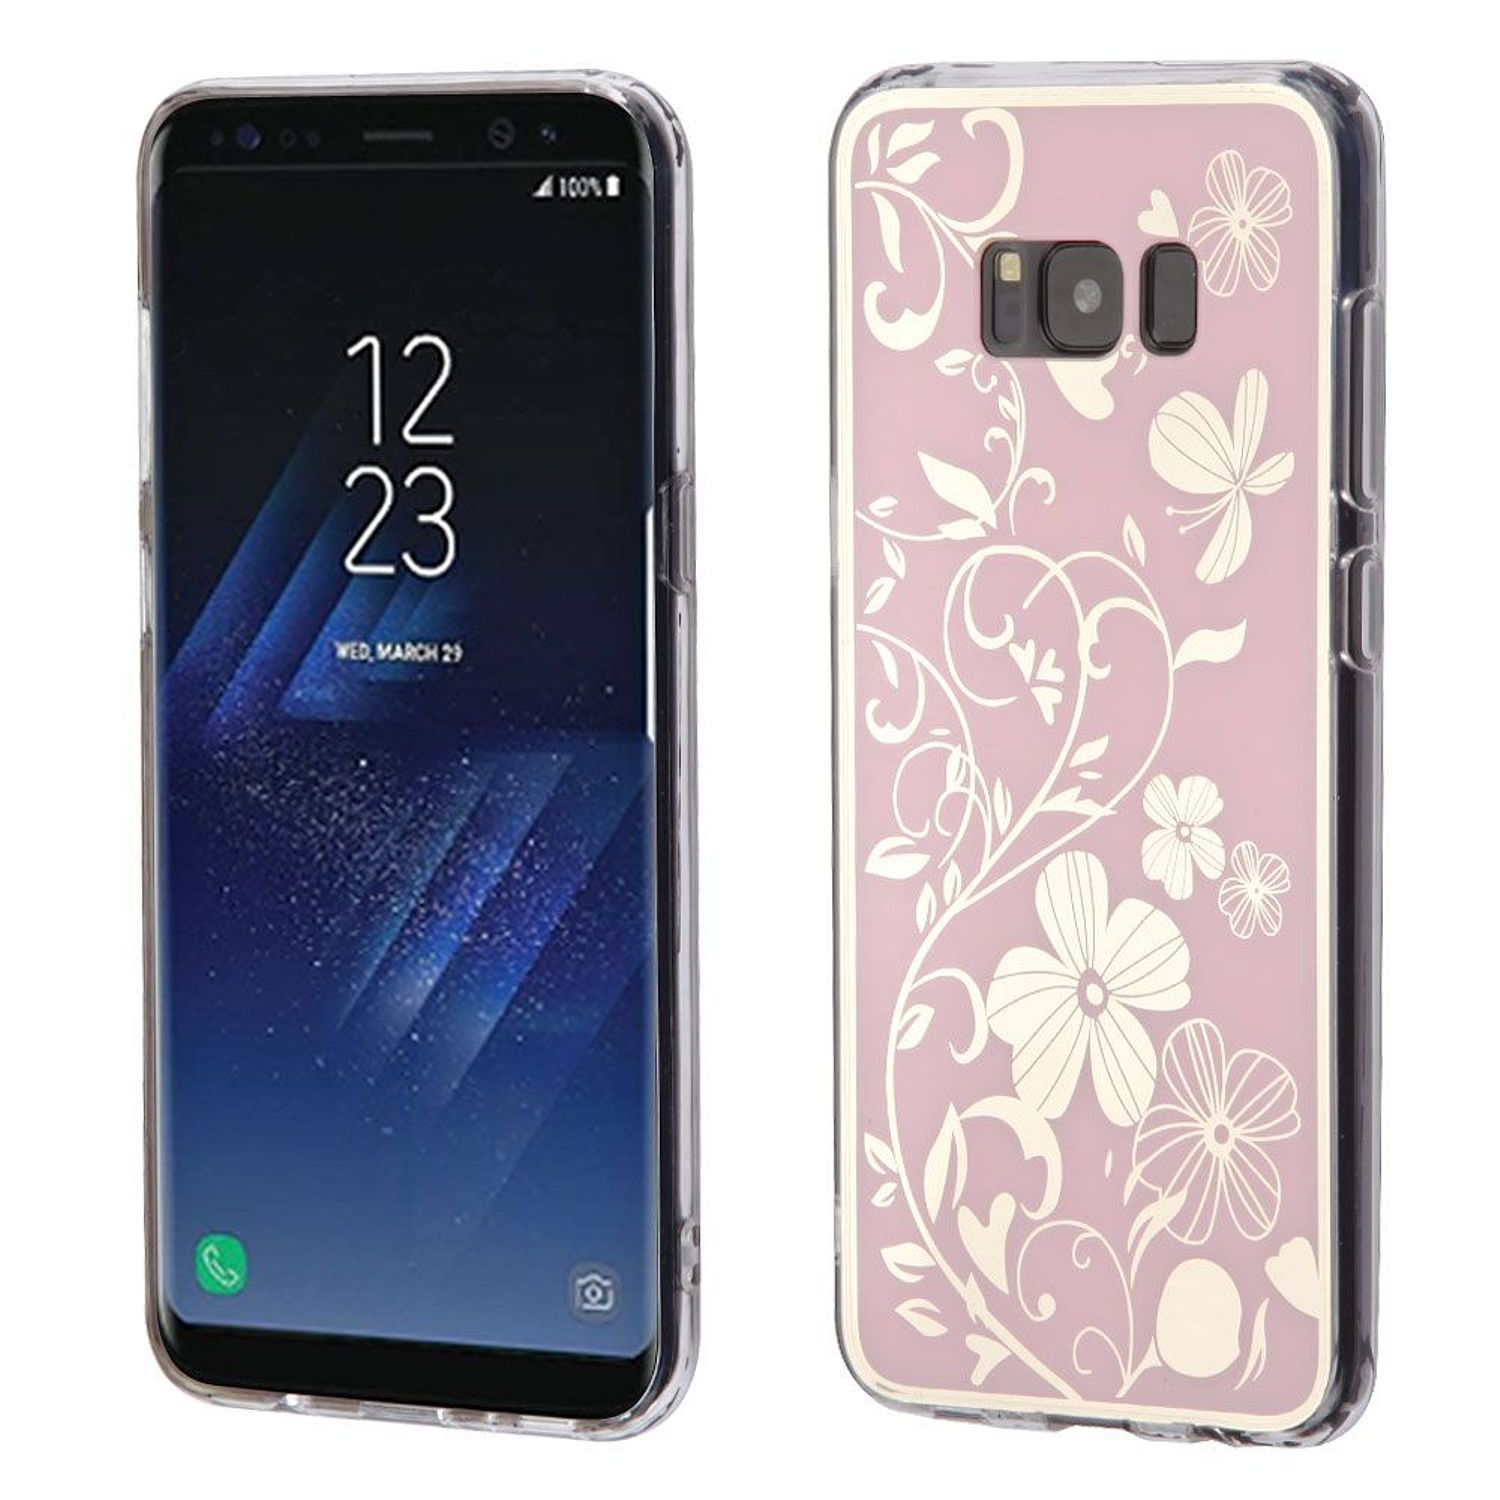 Samsung Galaxy S8+ Case, Samsung Galaxy S8 Plus Case, by Insten Electroplating Flowers TPU Gel Case Phone Cover For Samsung Galaxy S8 Plus S8+, Pink